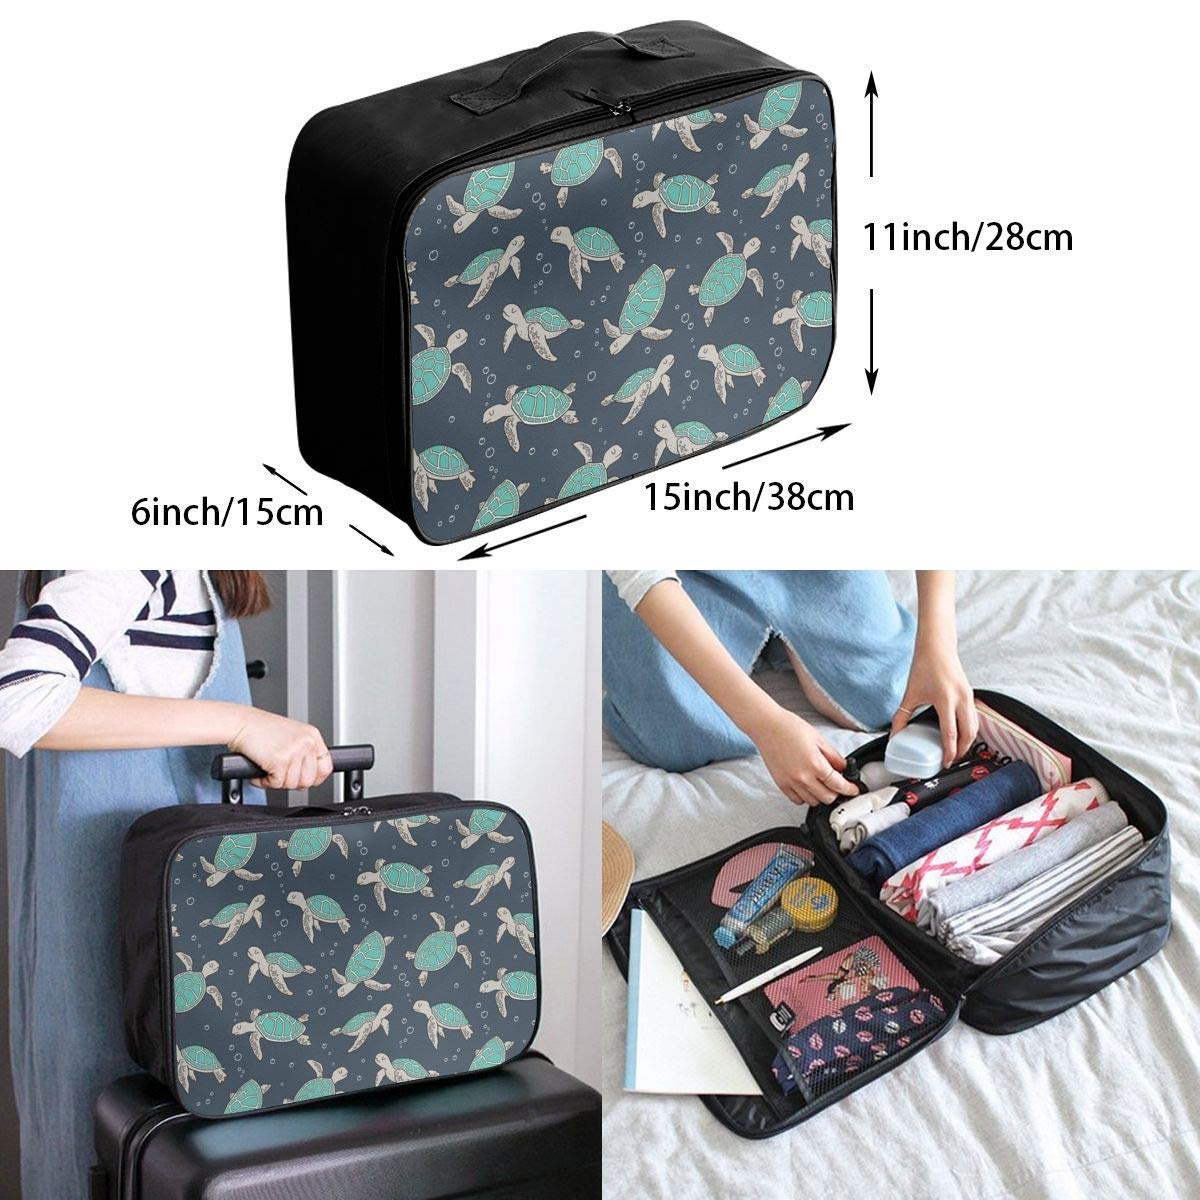 Sea Turtles Green Travel Lightweight Waterproof Foldable Storage Carry Luggage Duffle Tote Bag JTRVW Luggage Bags for Travel